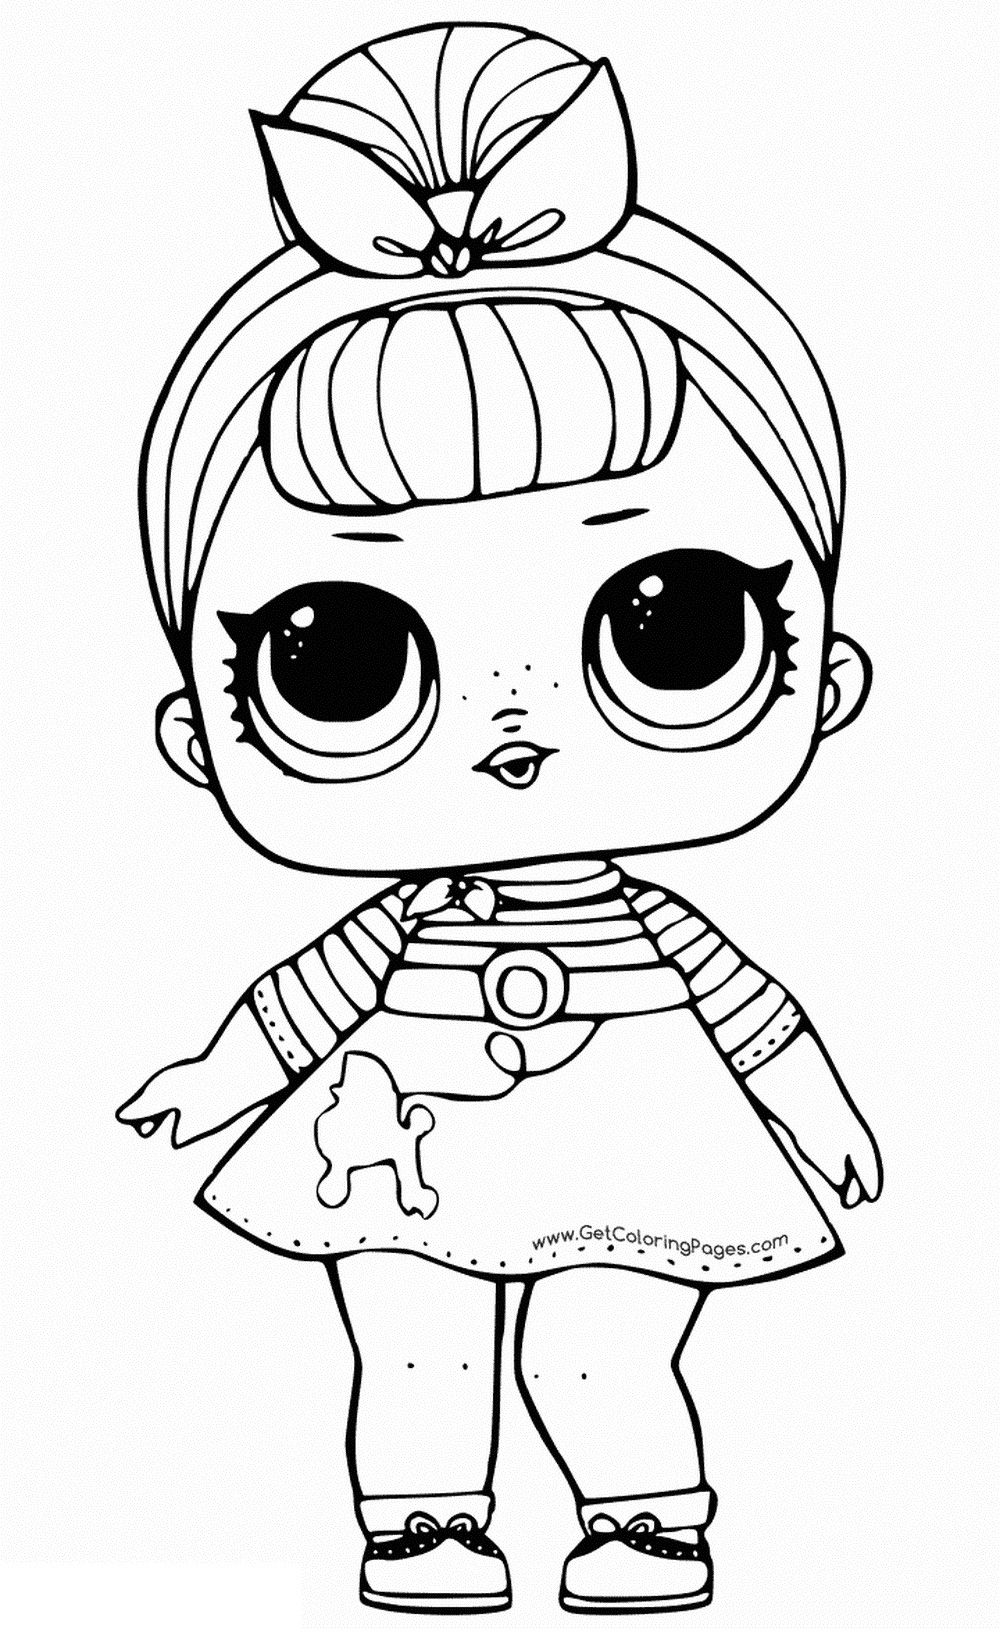 dolls colouring pages 40 free printable lol surprise dolls coloring pages colouring dolls pages